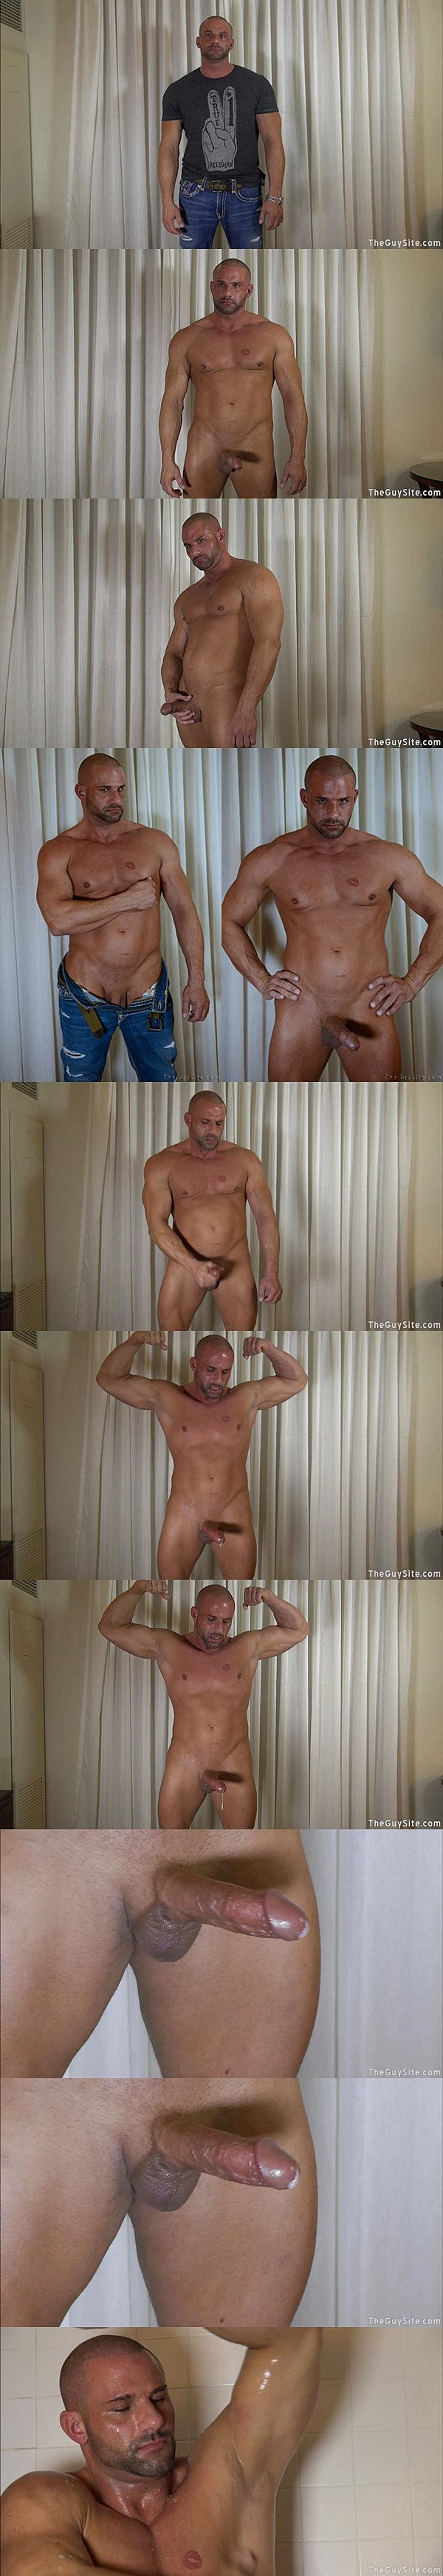 Straight macho hunk Levi shows off his hot naked body and big dick before he has a hand free jacking off at Theguysite